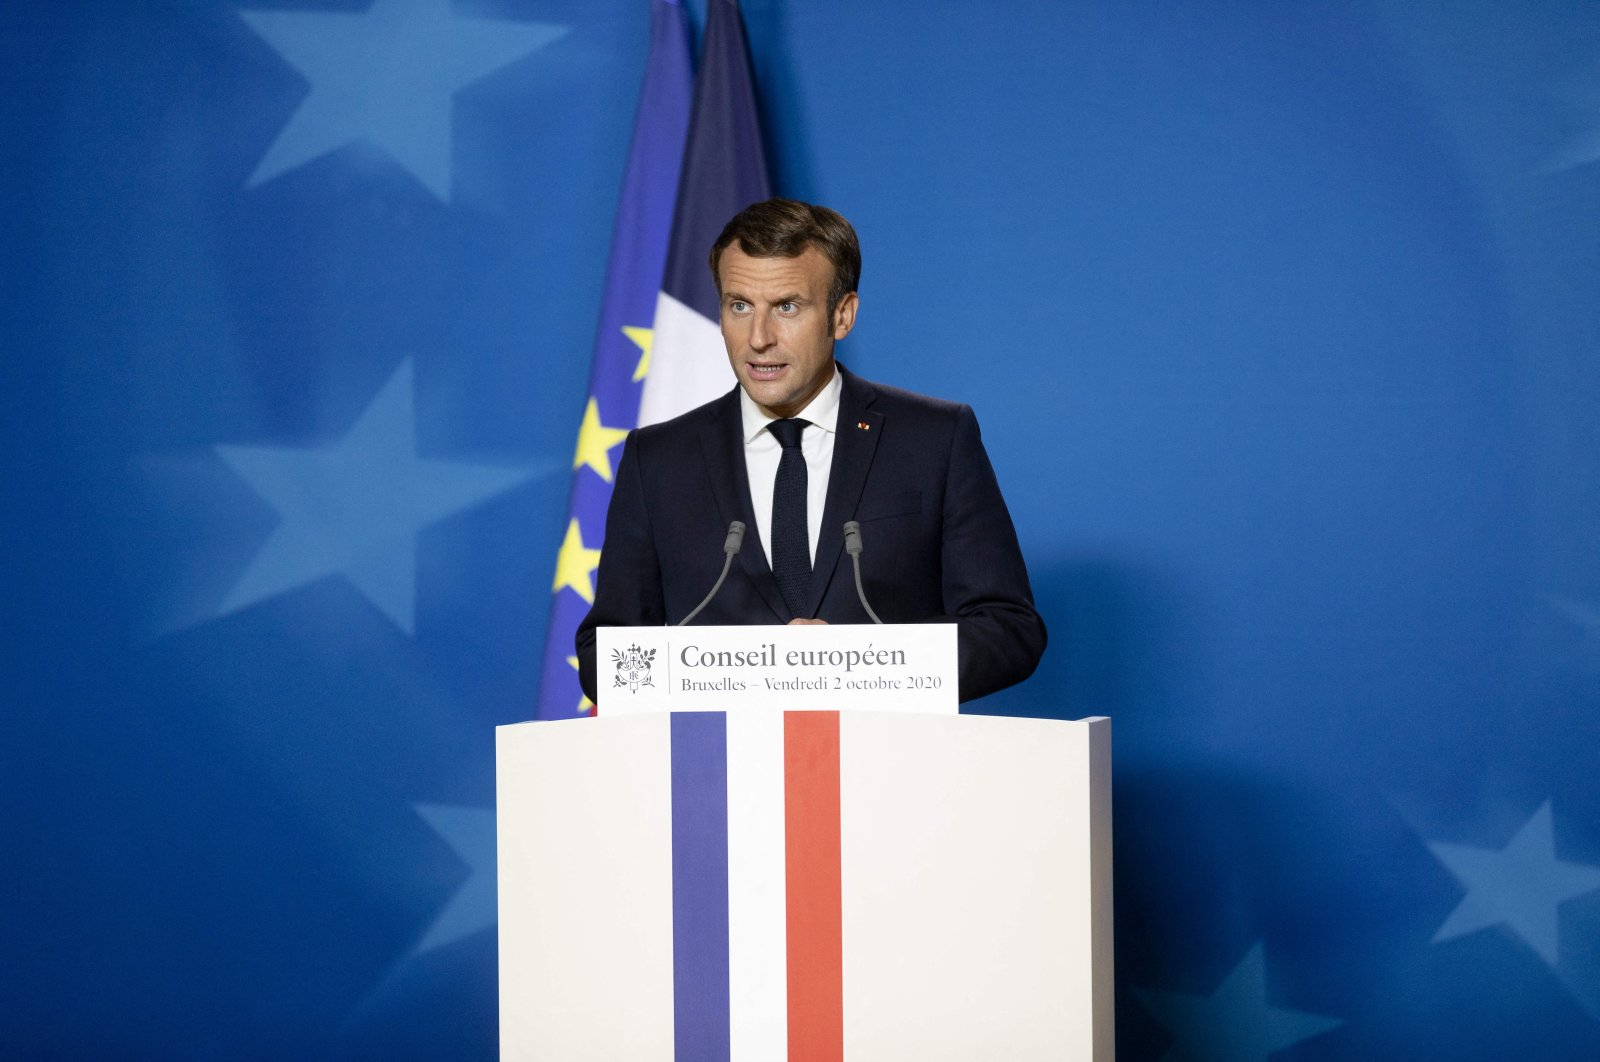 French President Emmanuel Macron speaks at the end of the first day of an EU summit, in Brussels, Belgium, Oct. 2, 2020. (Reuters Photo)